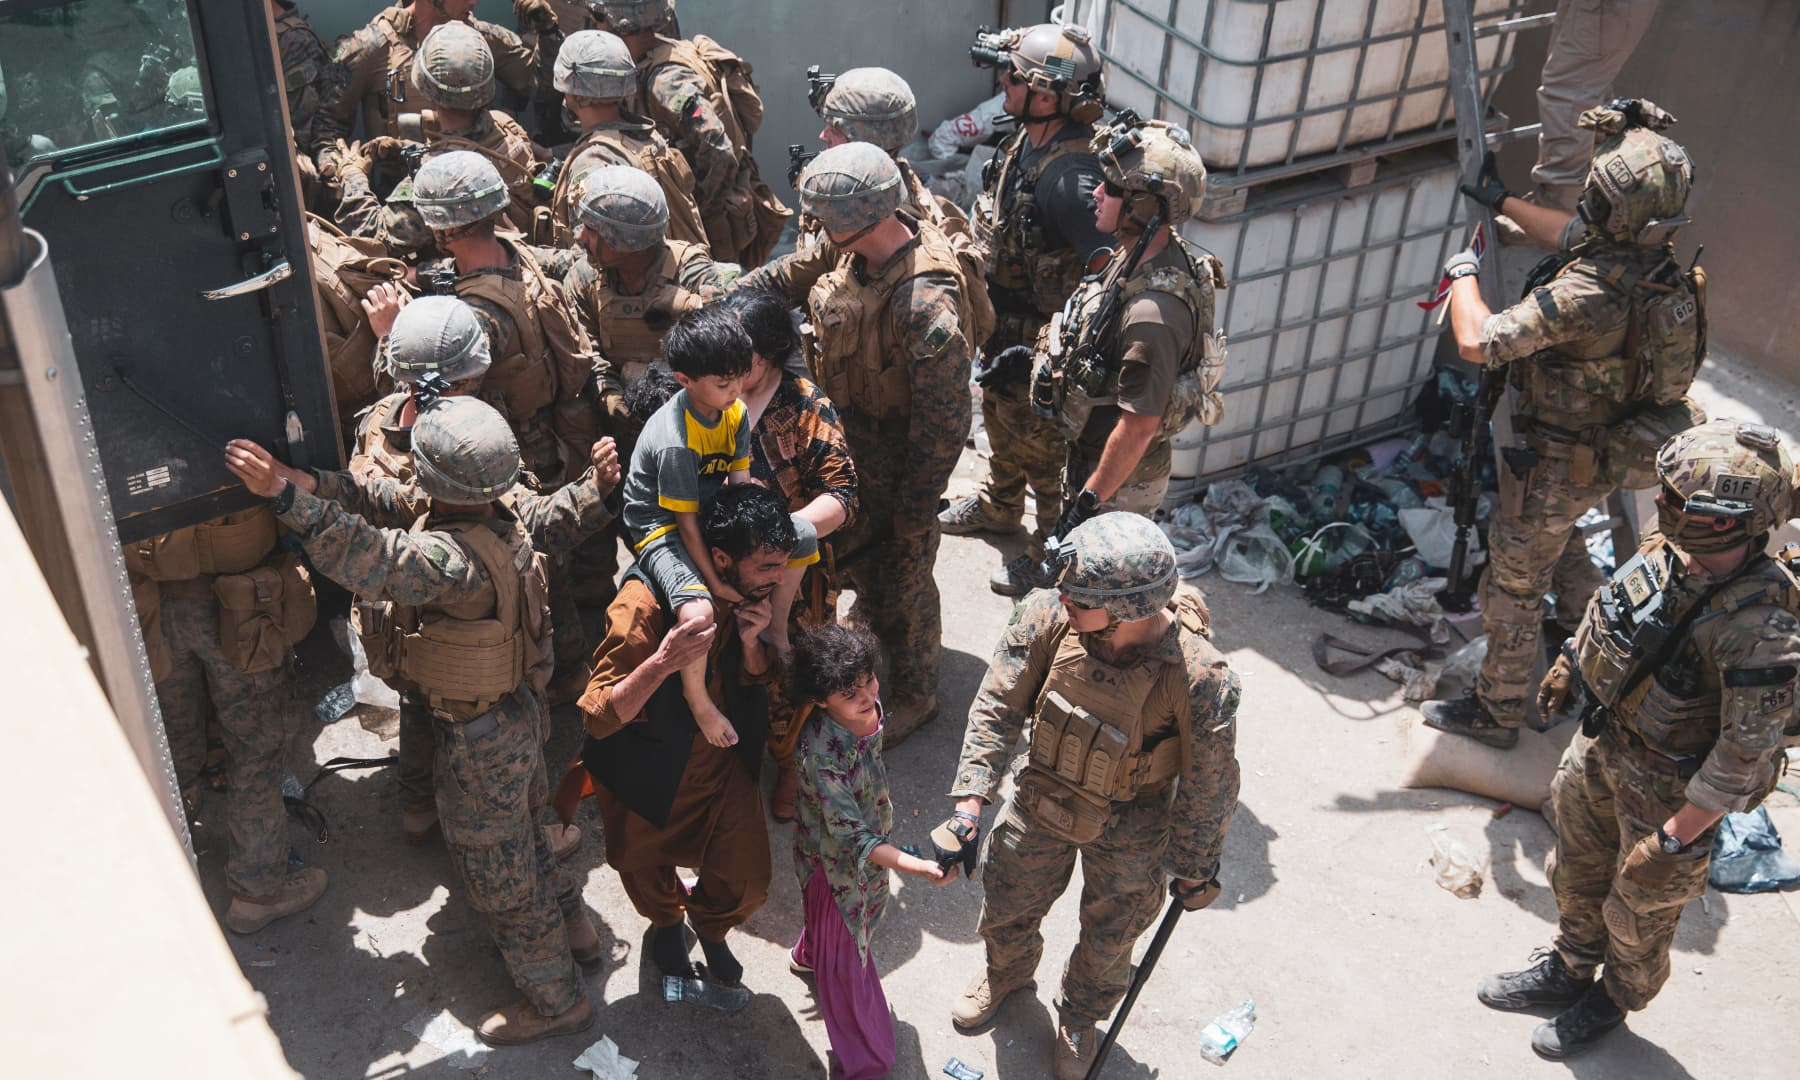 US Marines and Norweigian coalition forces assist with security at an Evacuation Control Checkpoint ensuring evacuees are processed safely during an evacuation at Hamid Karzai International Airport in Kabul, Afghanistan on August 20, 2021. — AP